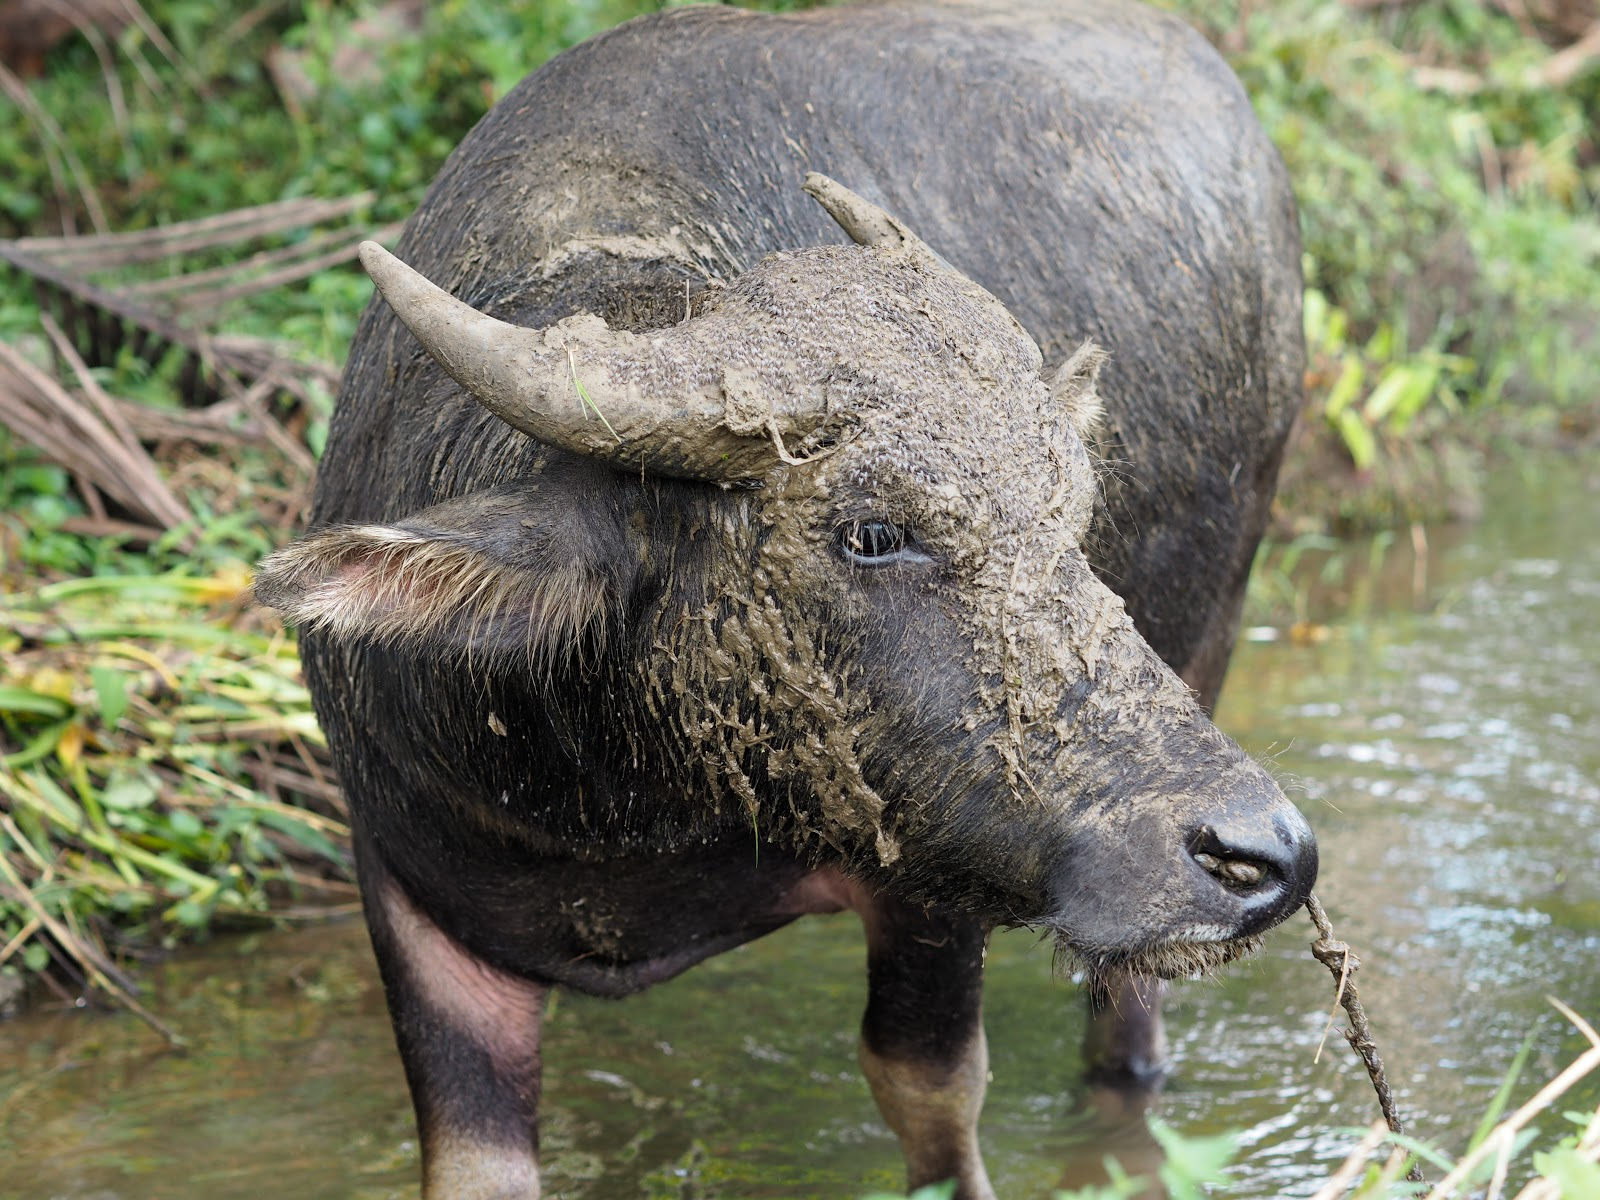 Buffalo in rice fields in Philippines